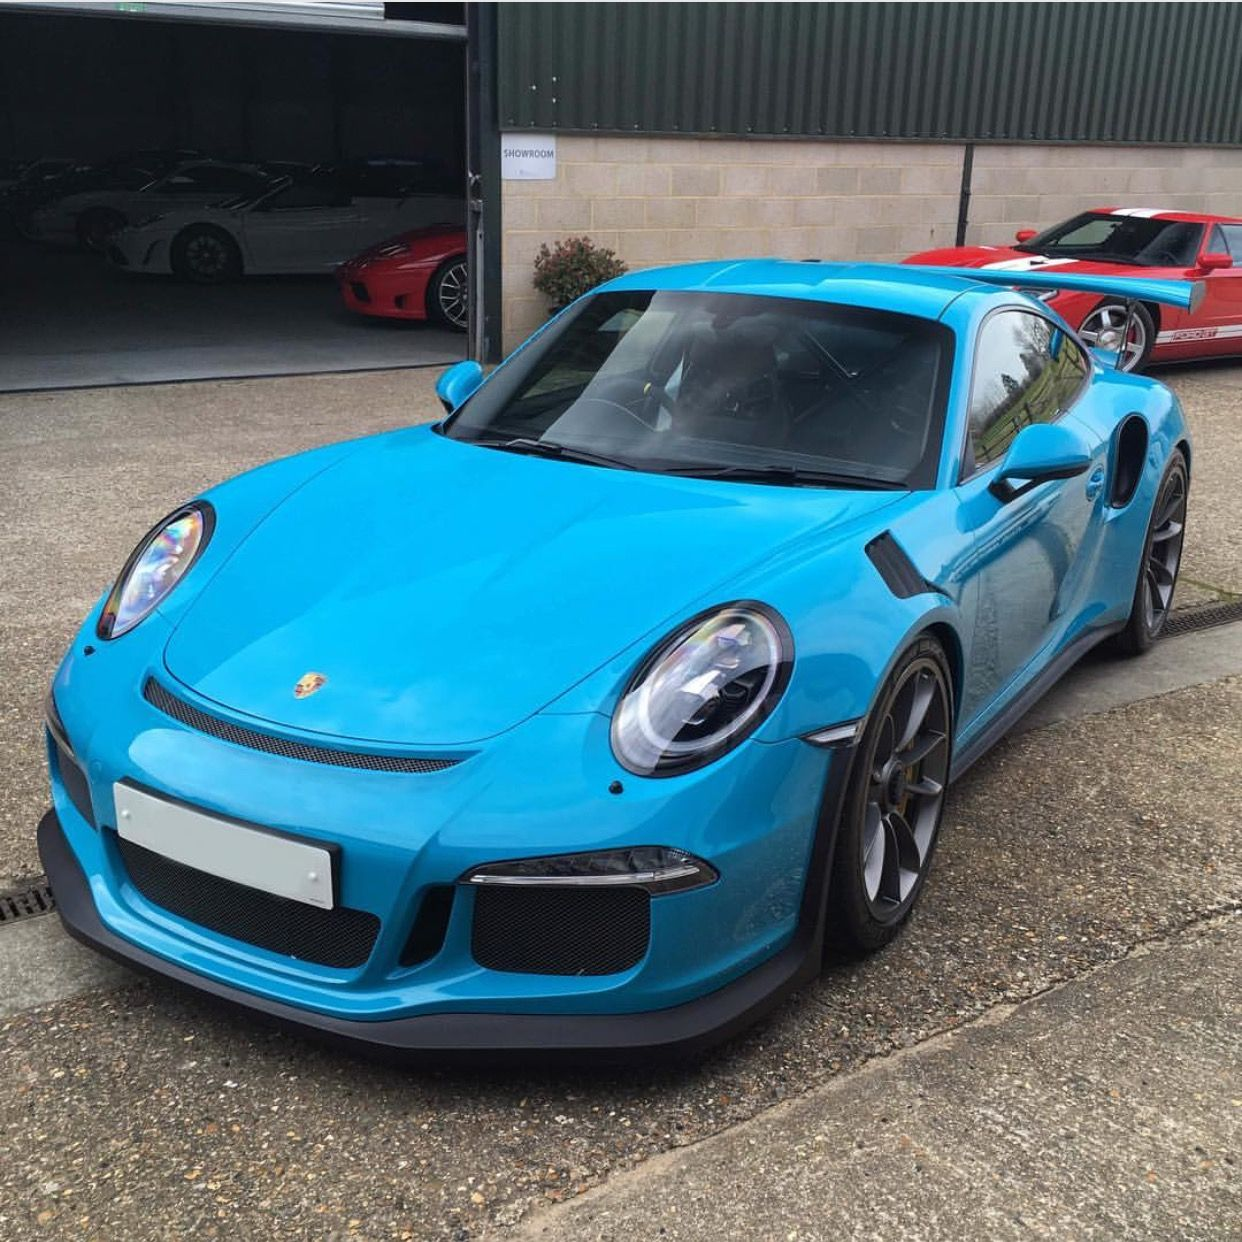 Luxury Cars Porsche Cars Black Porsche: Porsche 991 GT3 RS Painted In Paint To Sample Miami Blue